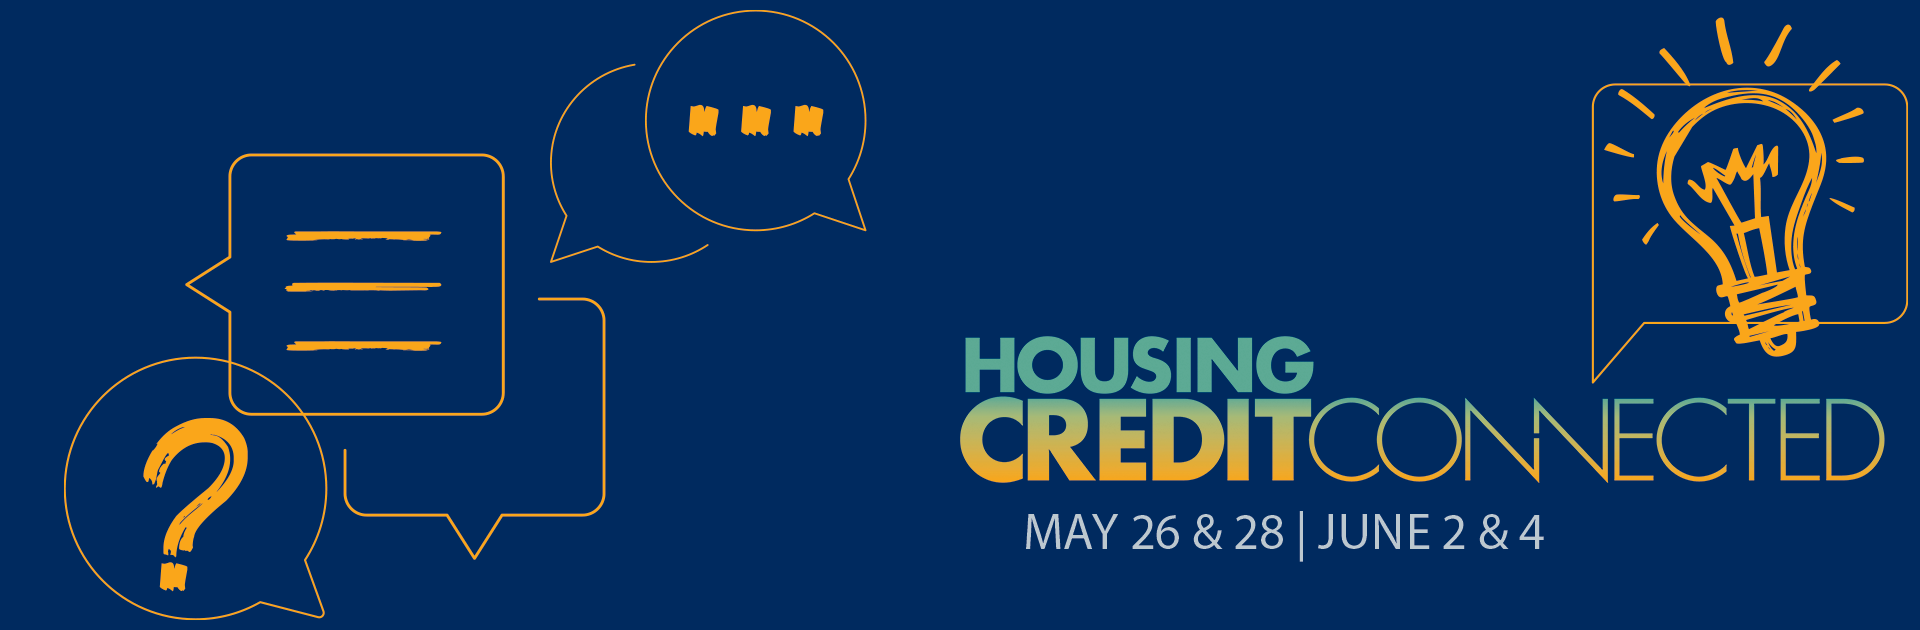 Homepage-Housing-Credit-Connected